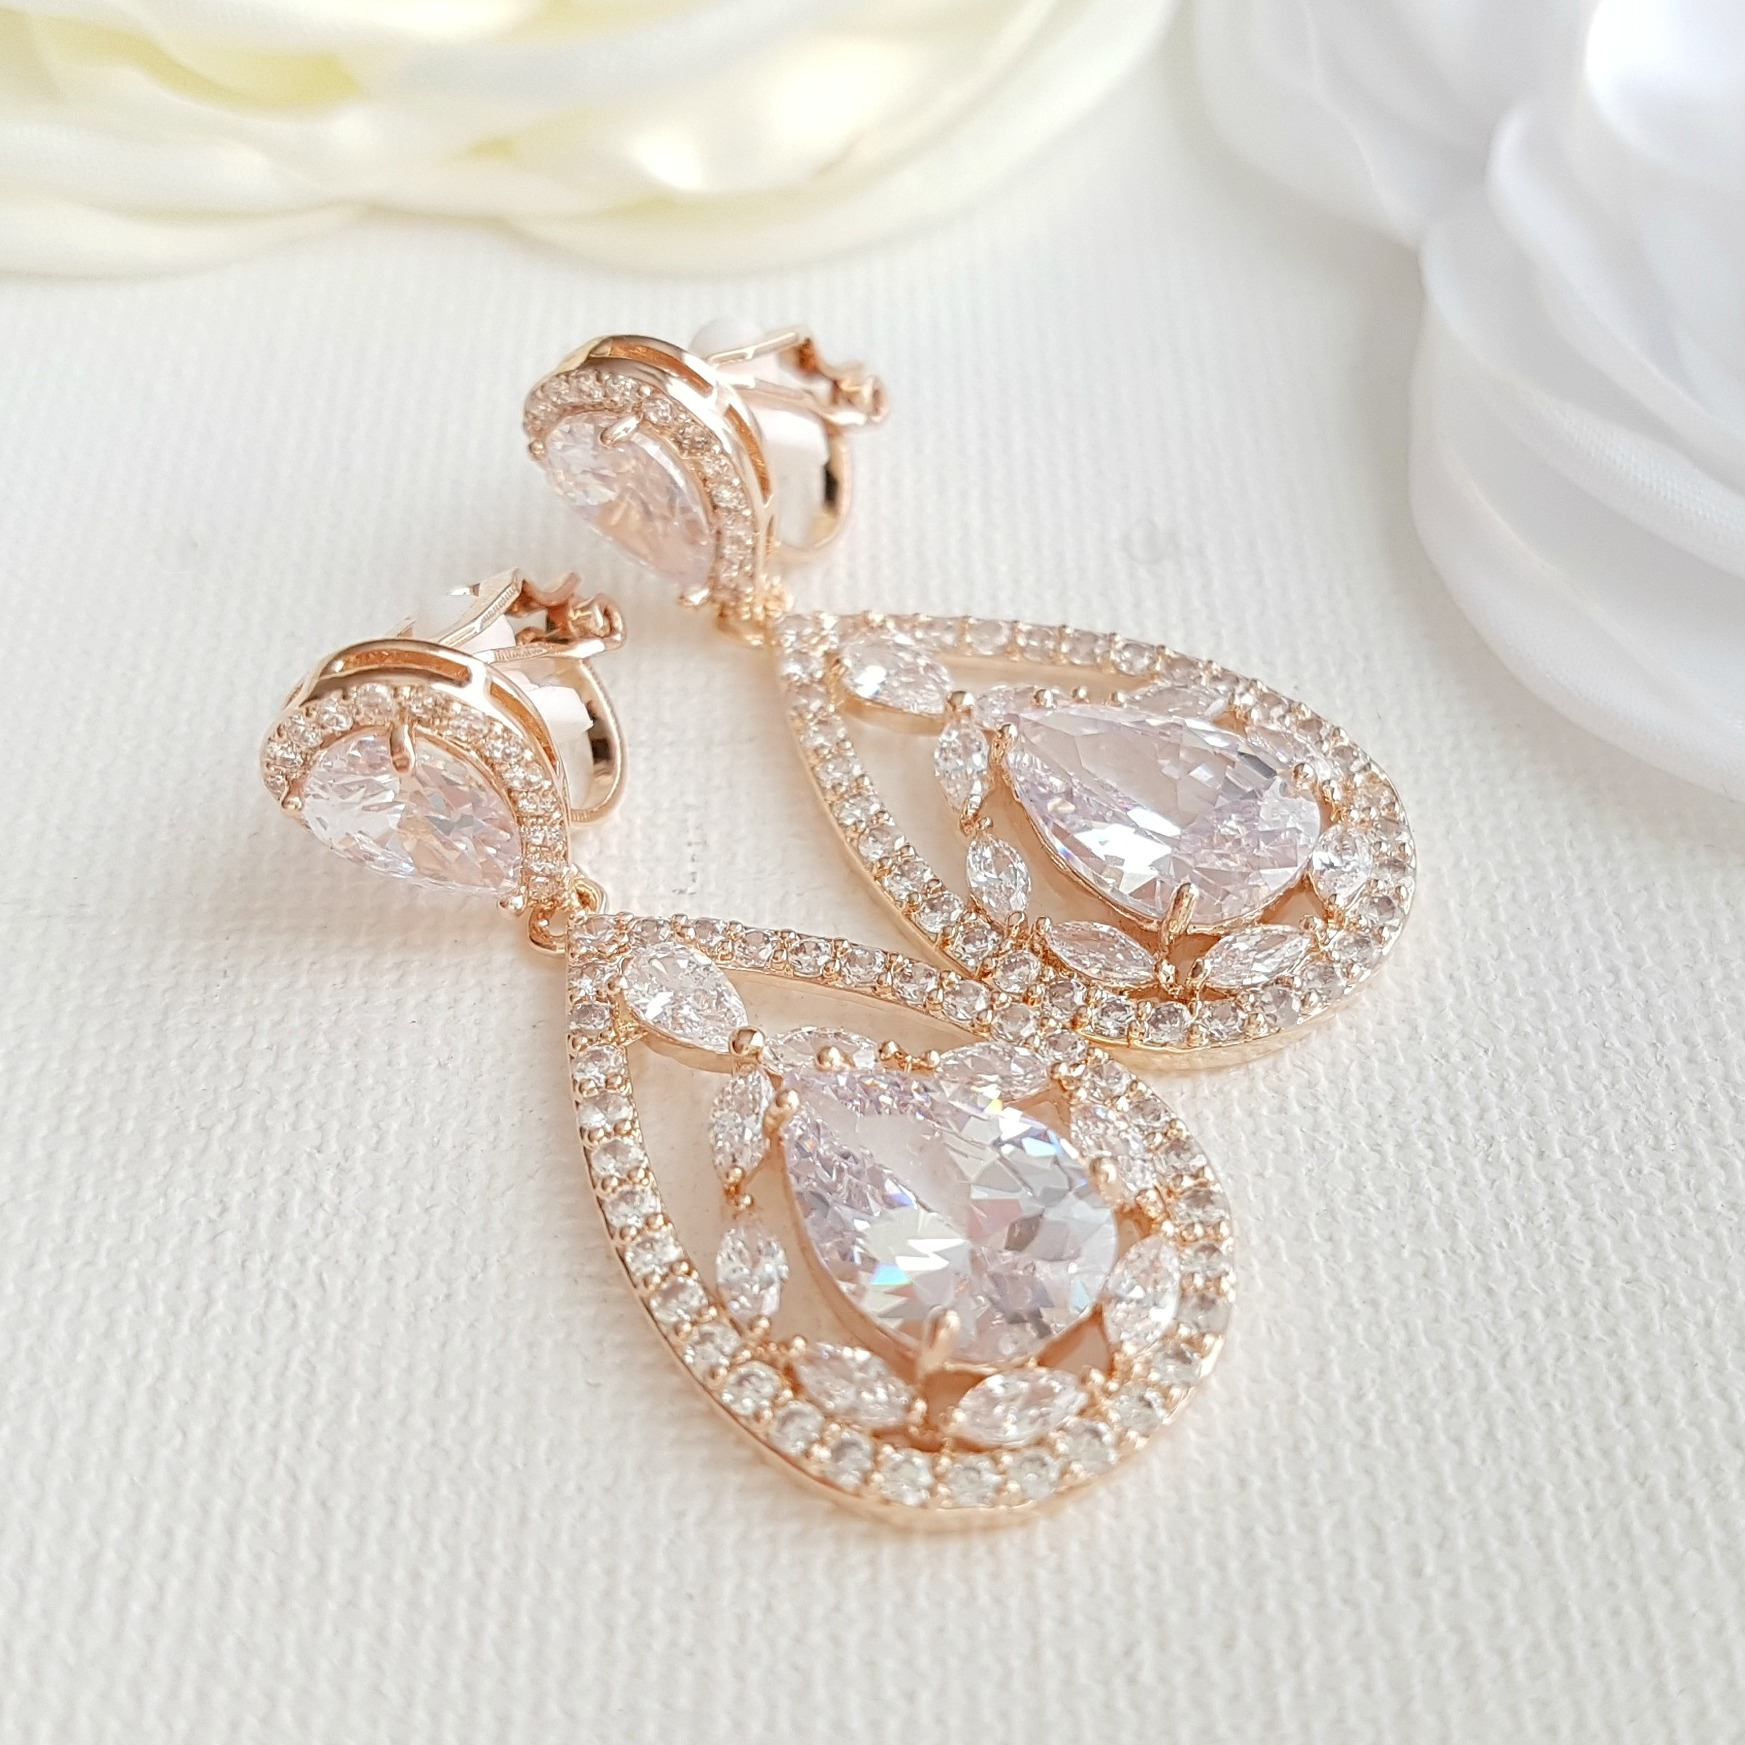 Rose Gold Clip On Earrings for Brides with Non Pierced Ears-Esther